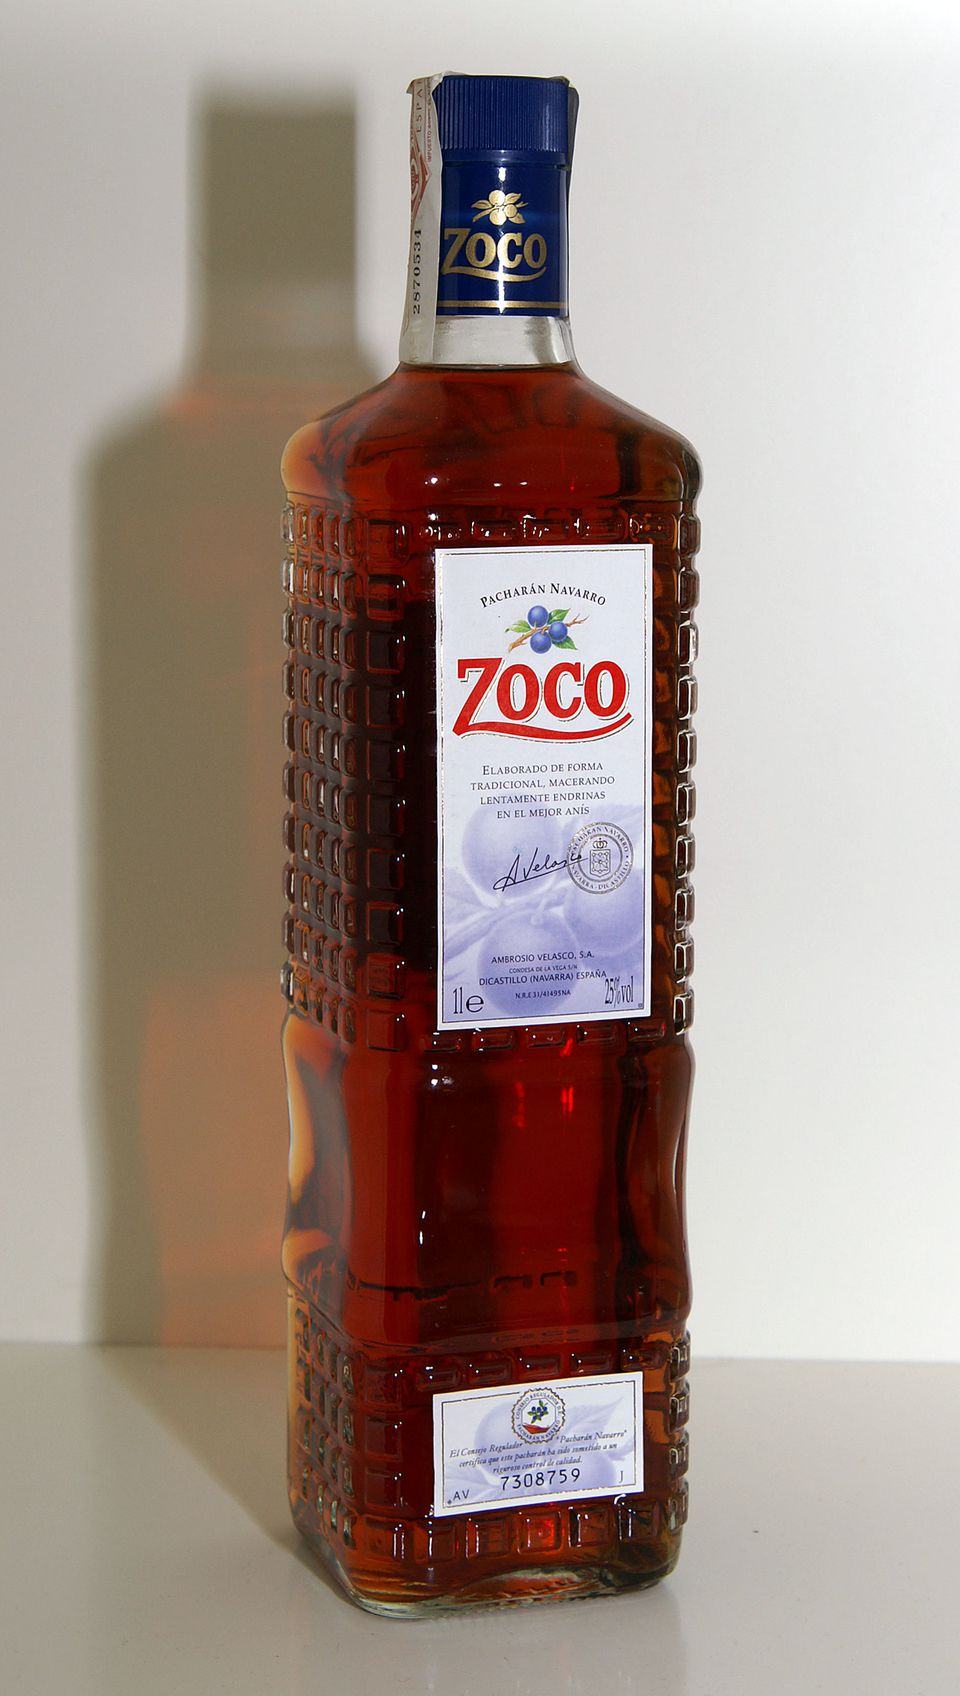 Zoco brand of Pacharan